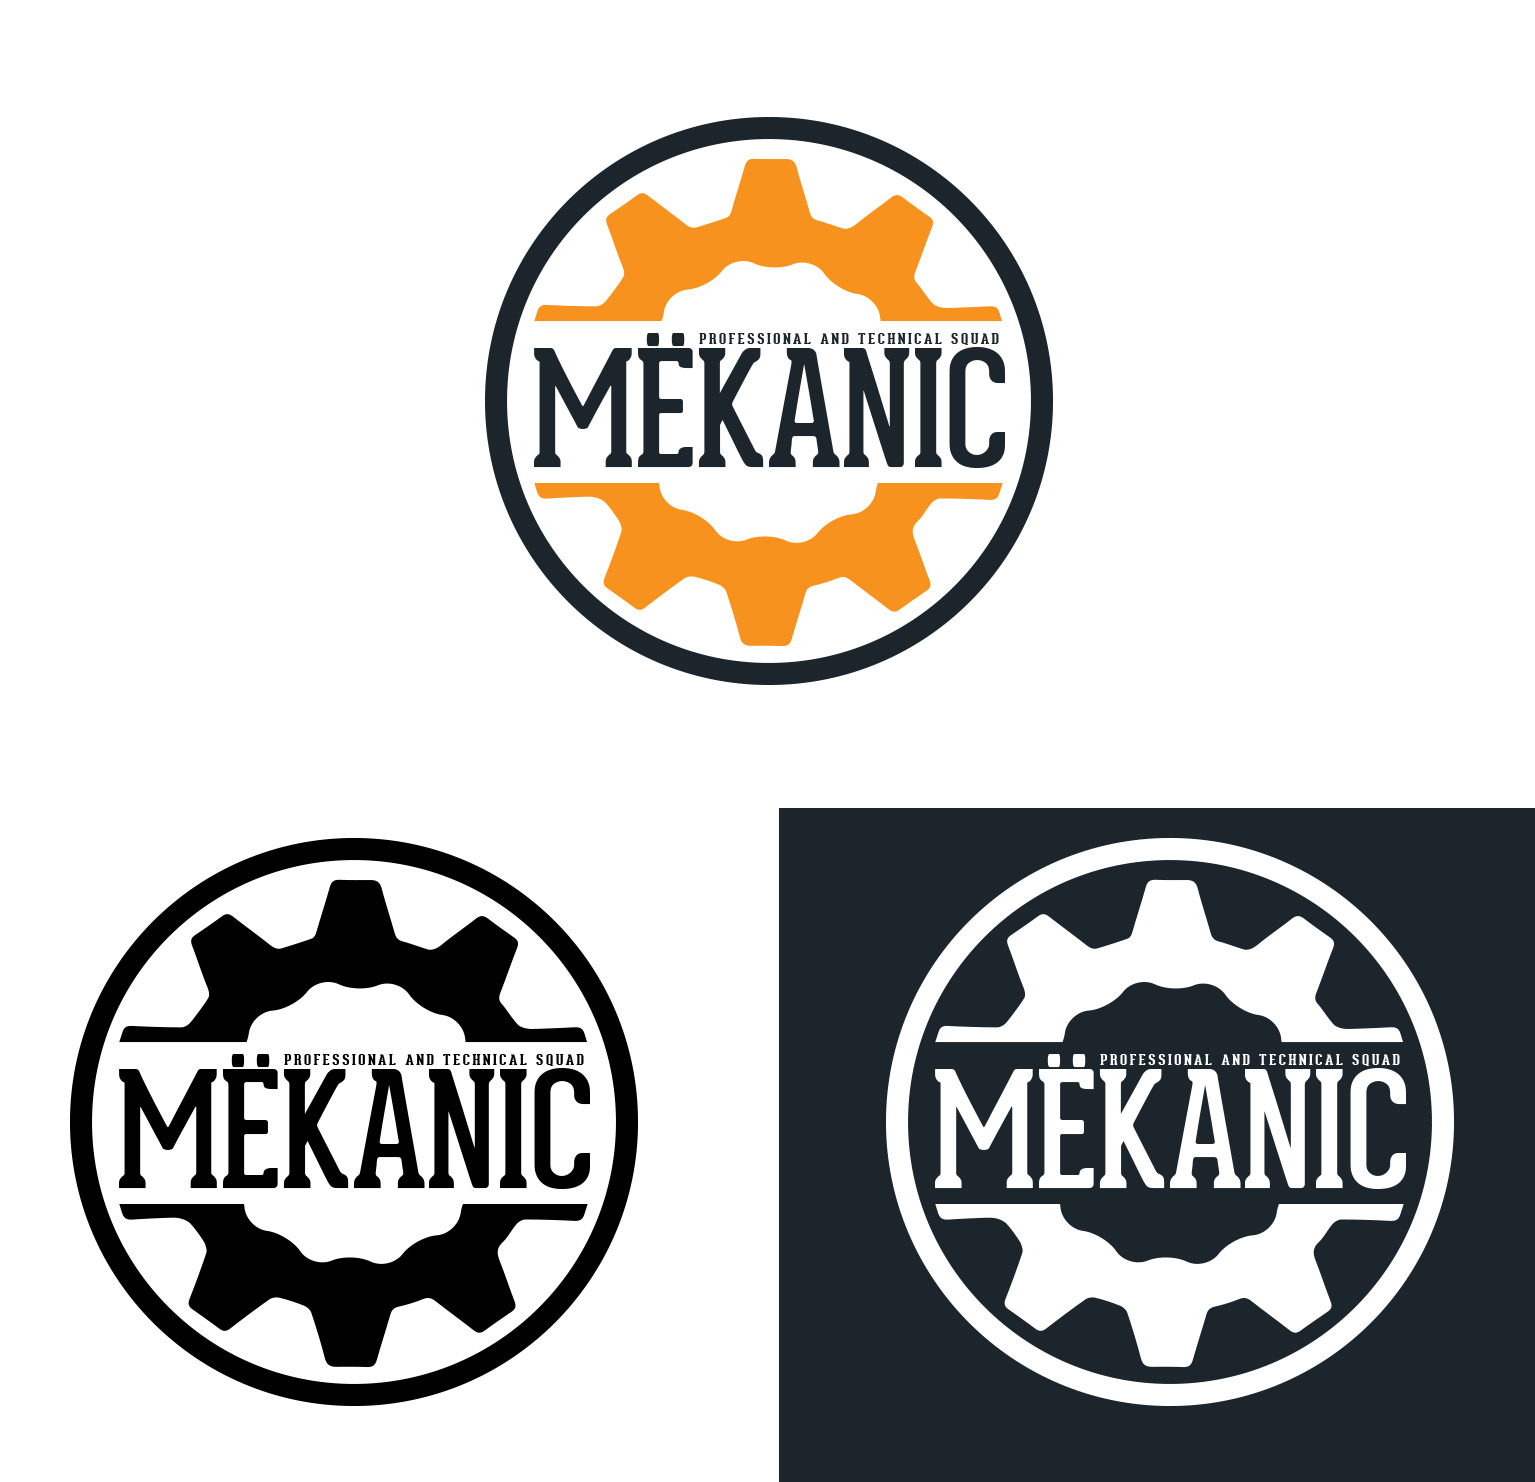 Logo Design by olii - Entry No. 274 in the Logo Design Contest Creative Logo Design for MËKANIC - Professional and technical squad.